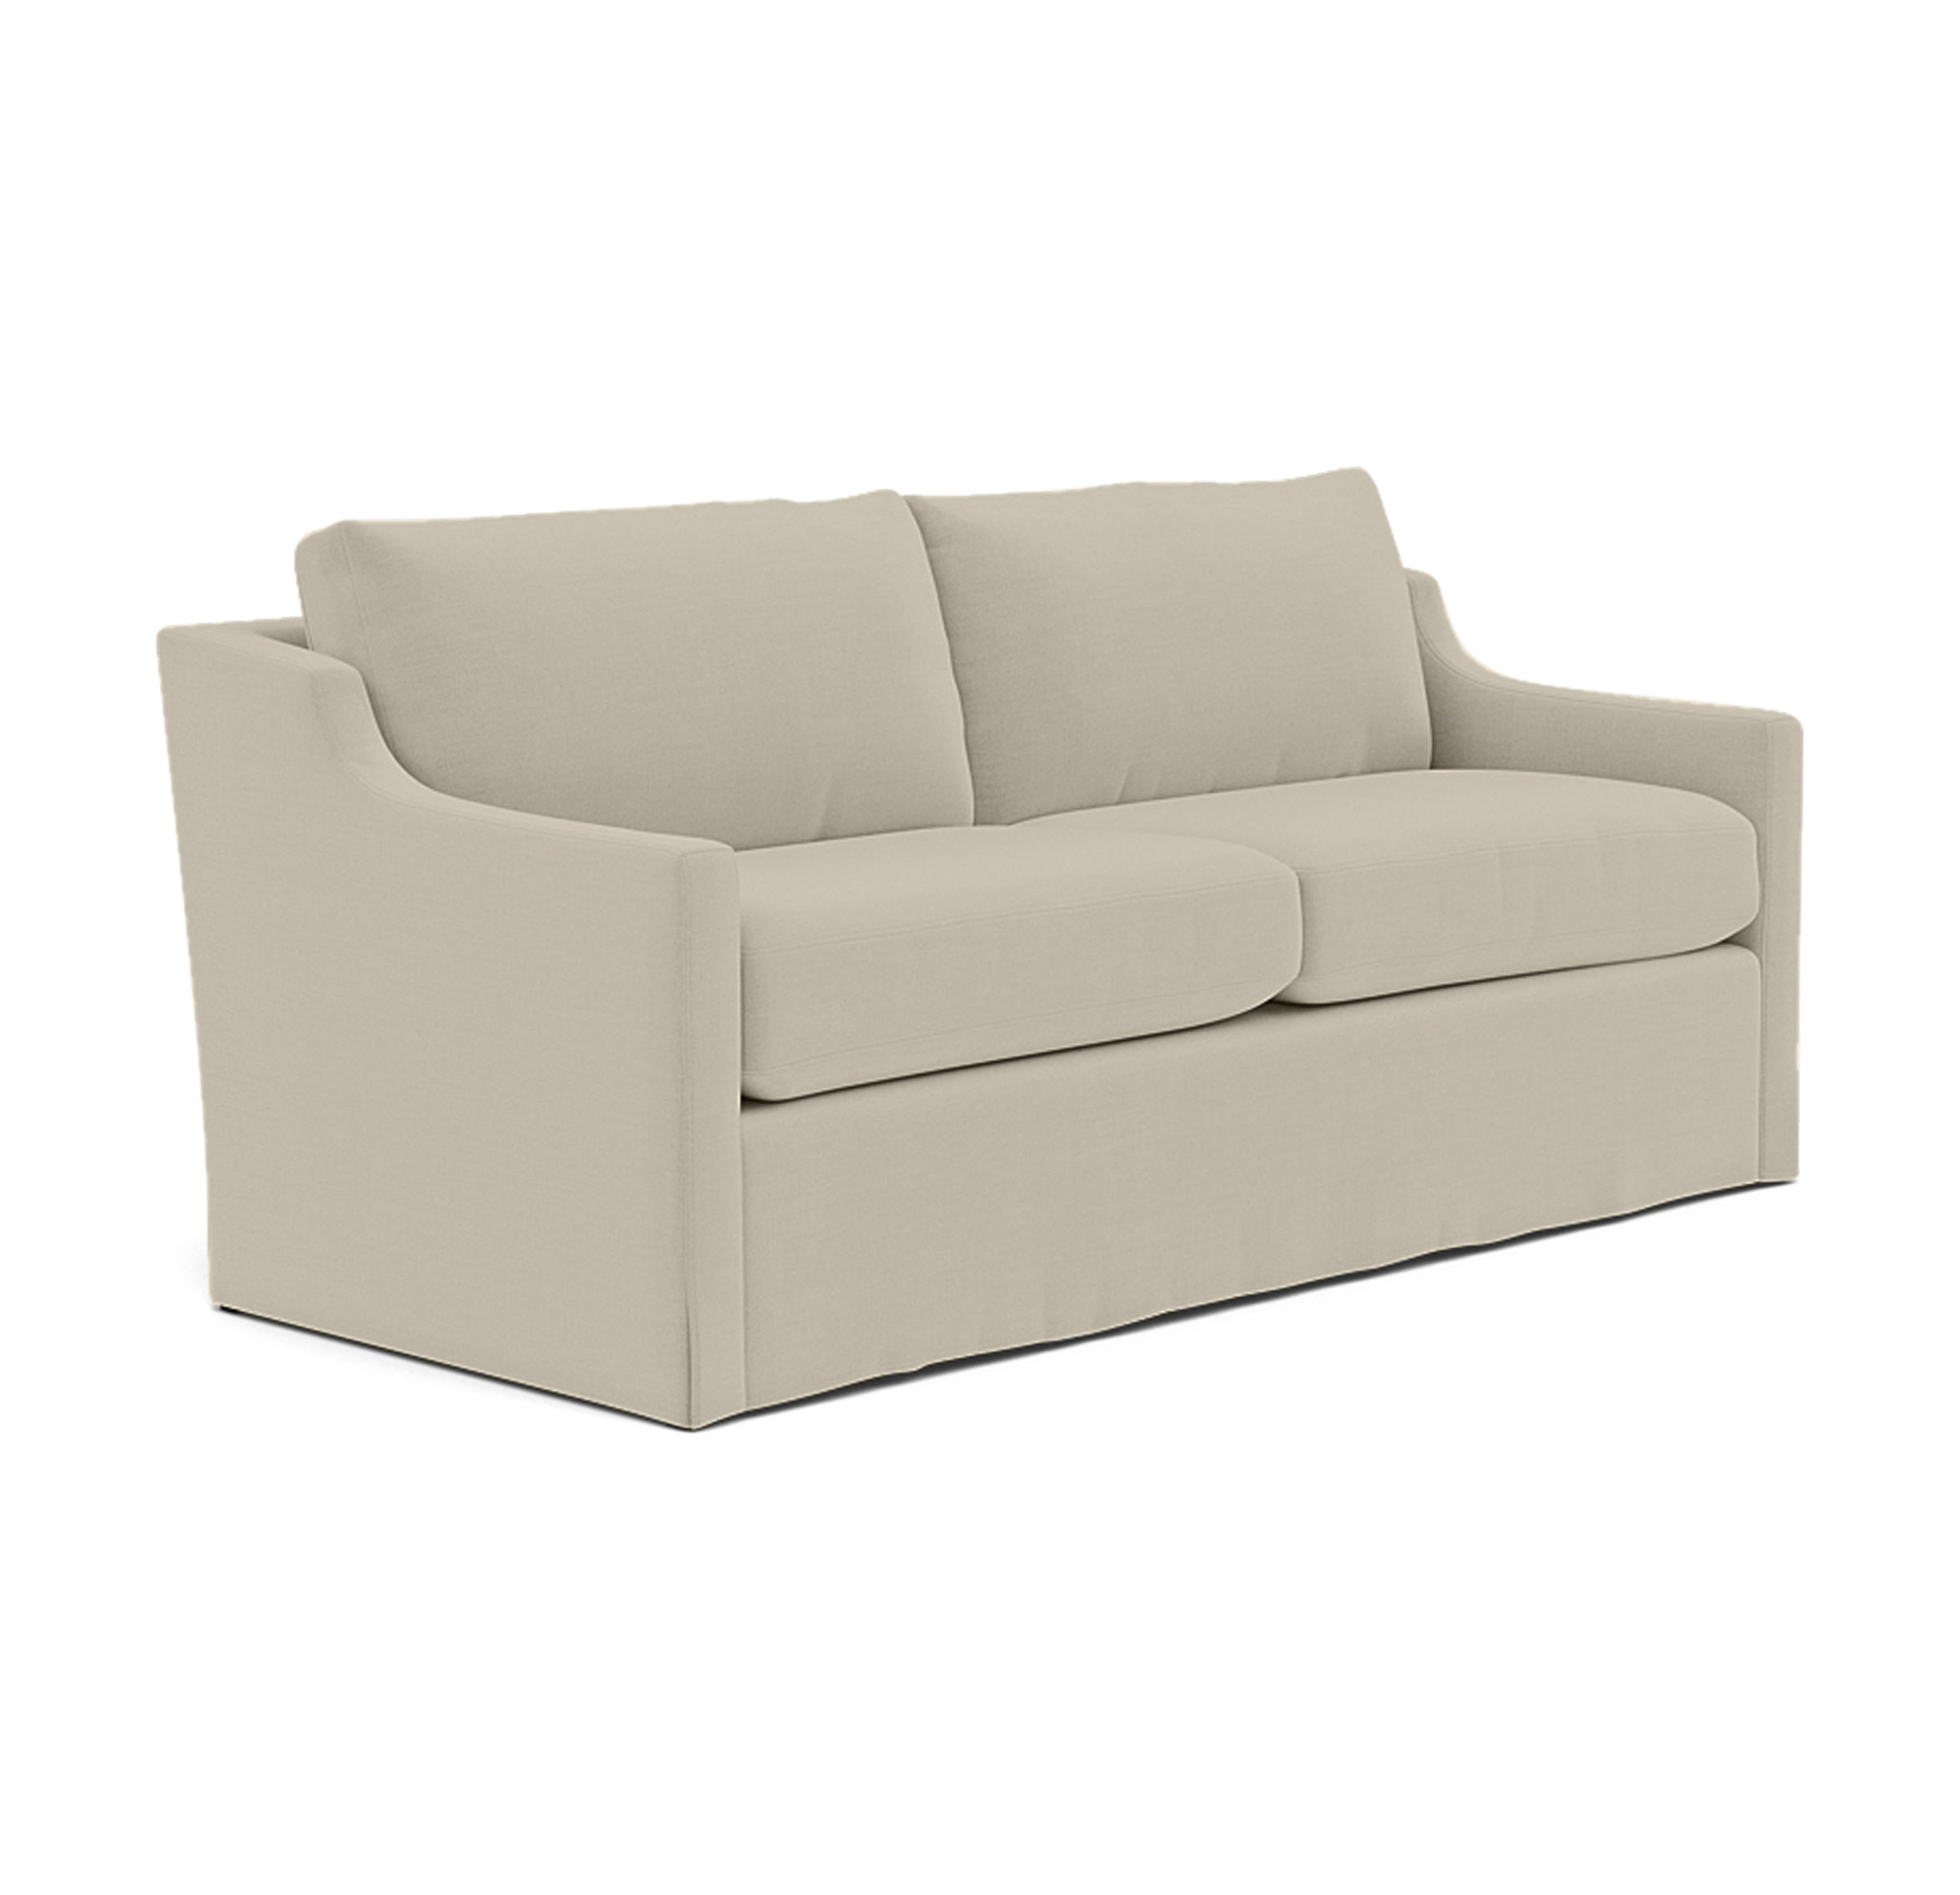 GIGI SLIPCOVER SOFA, PERFORMANCE LINEN - SILVER, hi-res